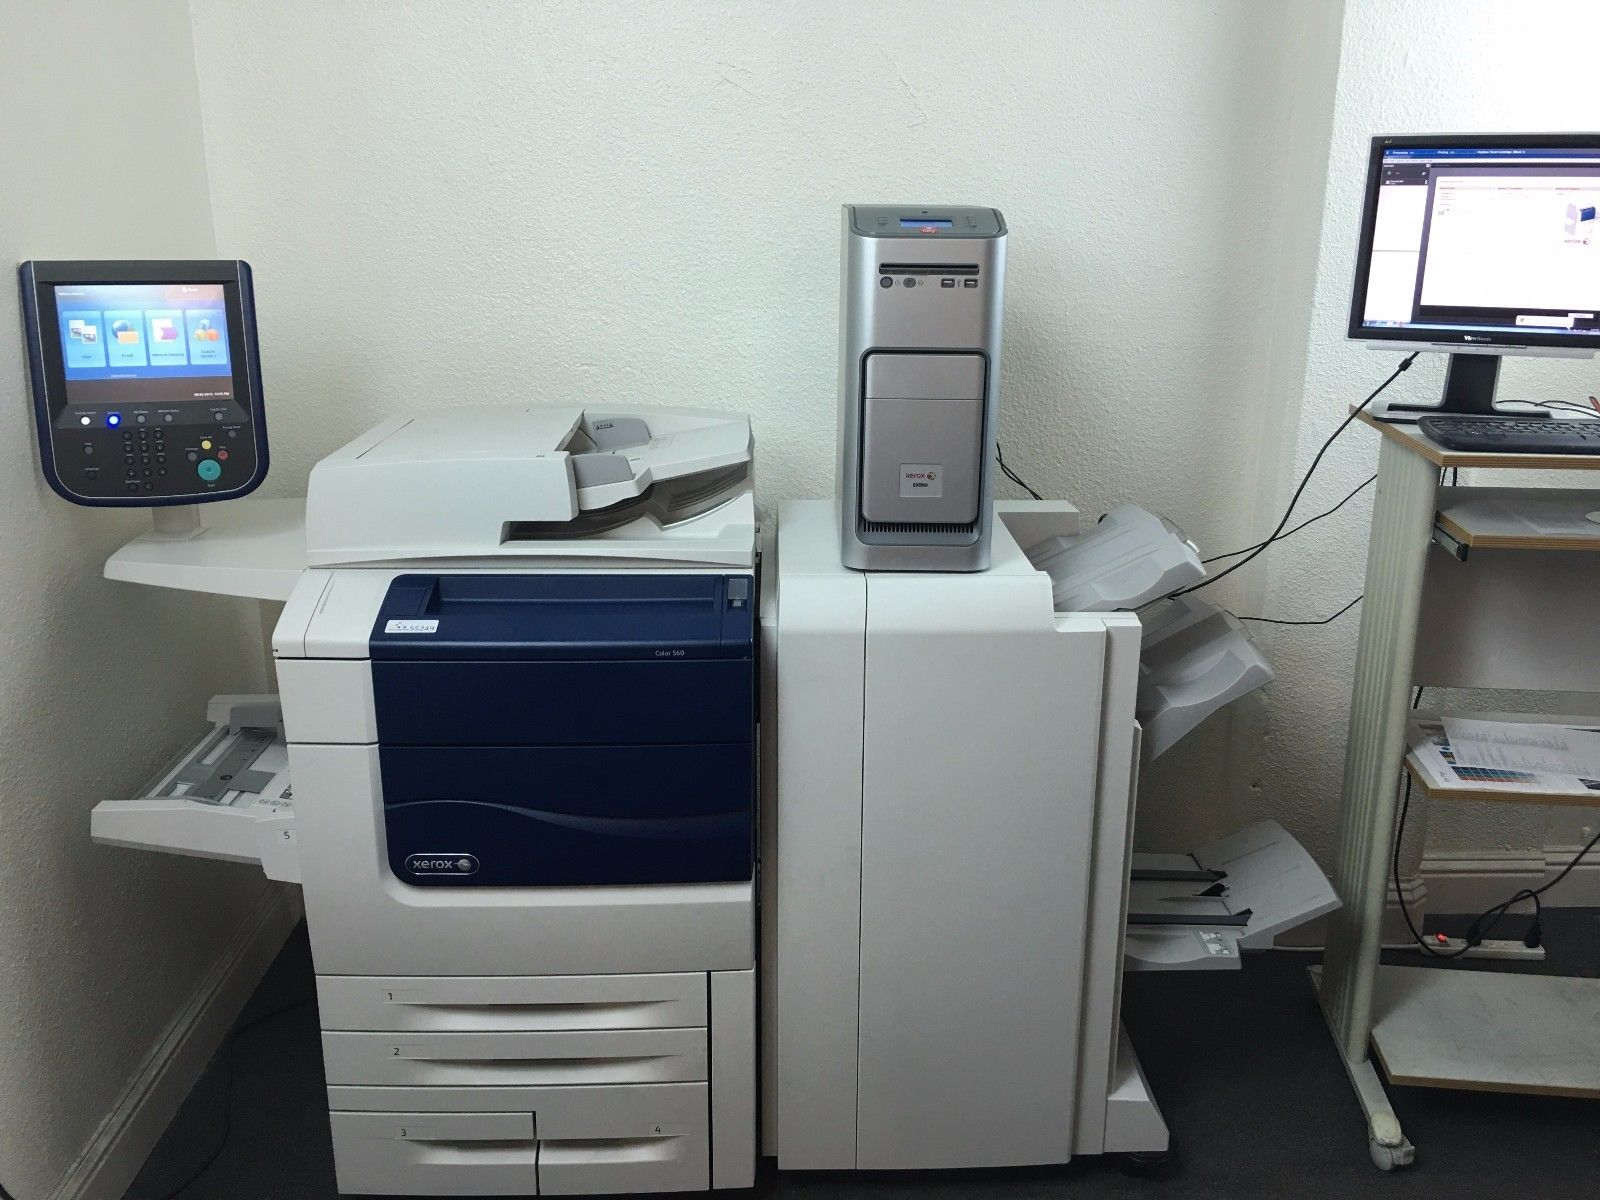 Xerox Color 560 Copier Printer Scanner with EX560 & Booklet Stitch finisher 266k by Xerox